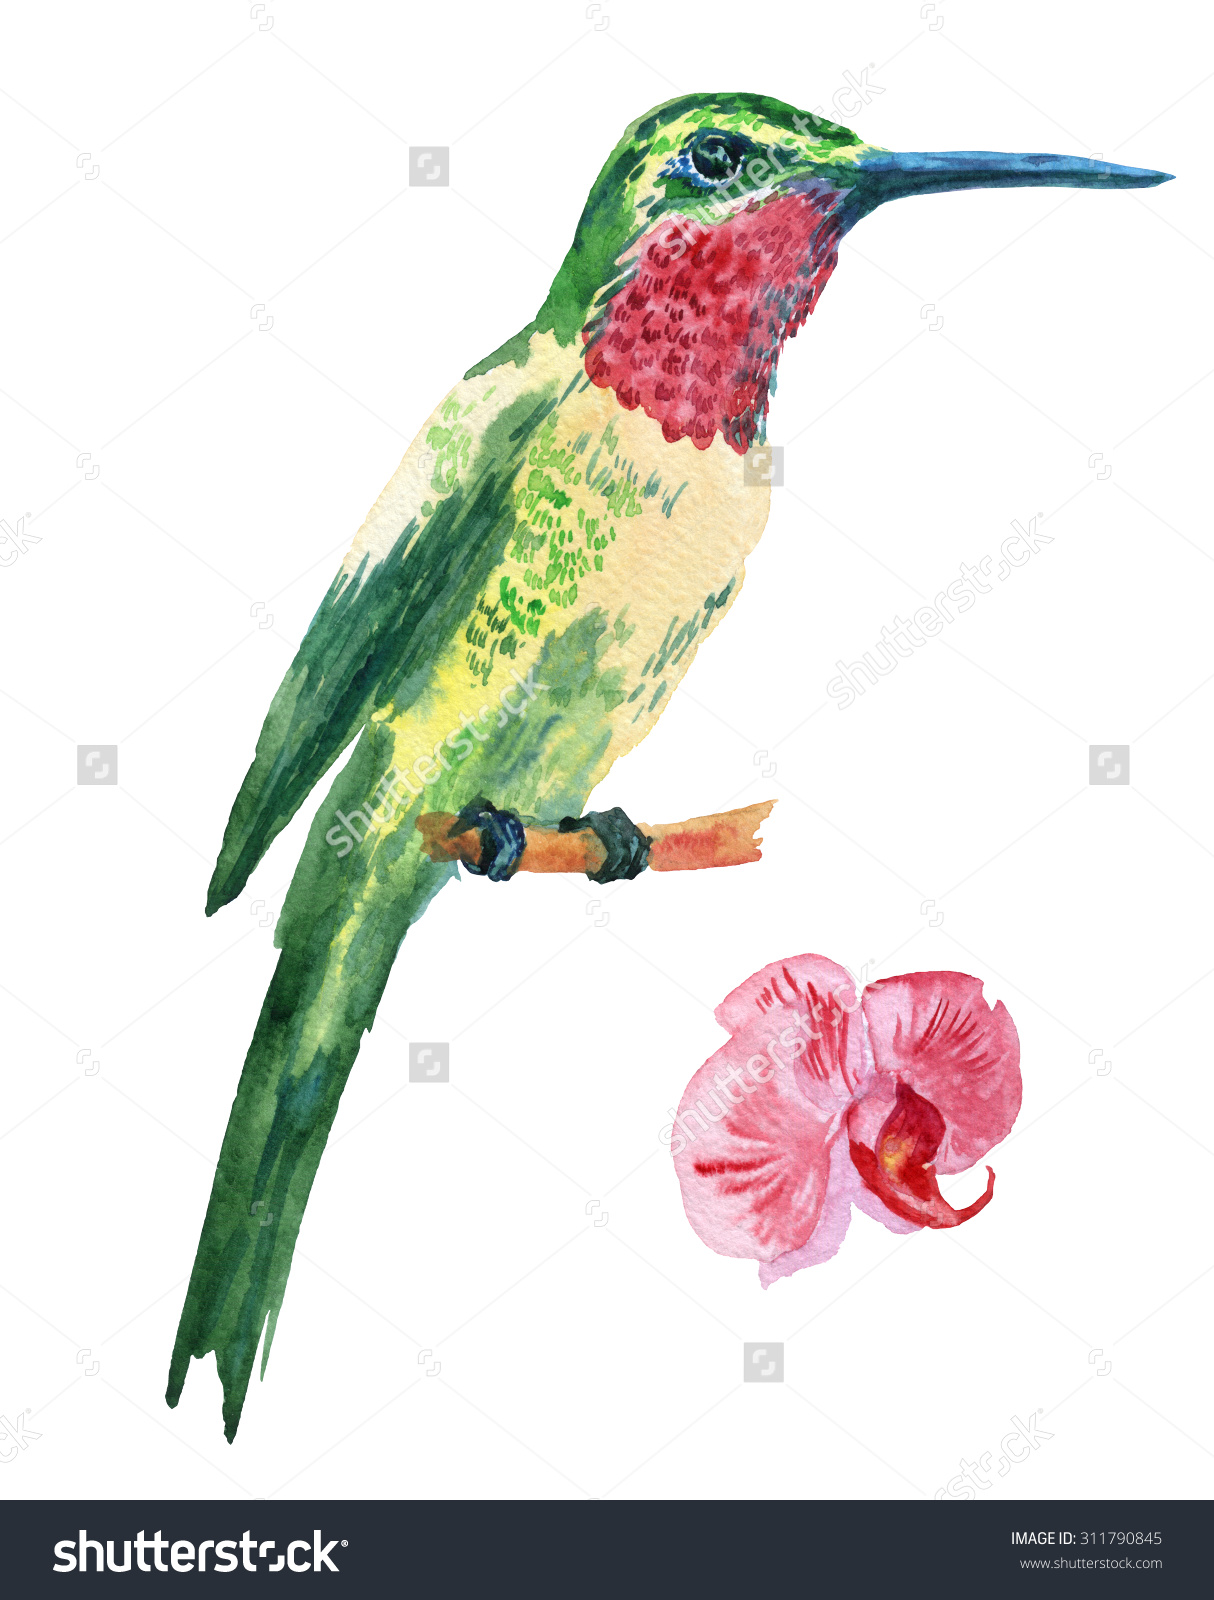 Green-throated Bird Of Paradise clipart #8, Download drawings